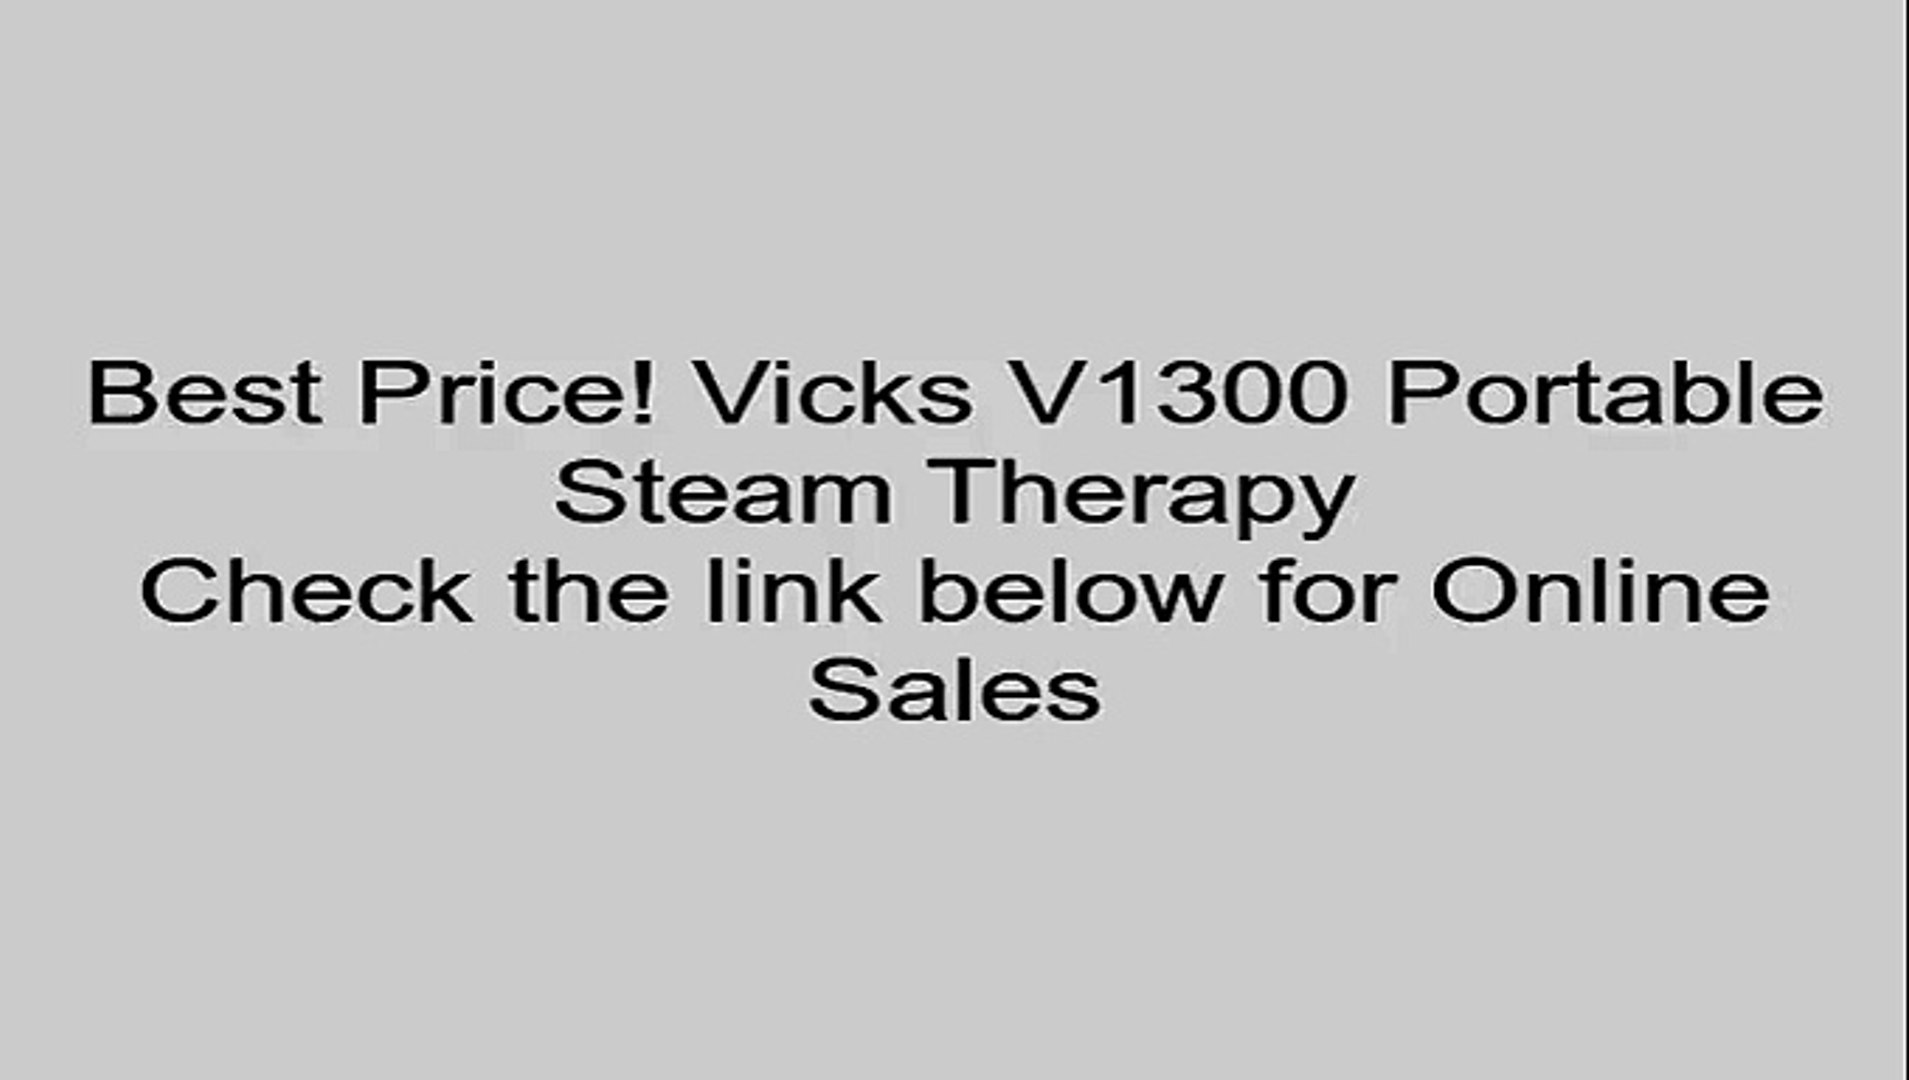 Vicks V1300 Portable Steam Therapy Review